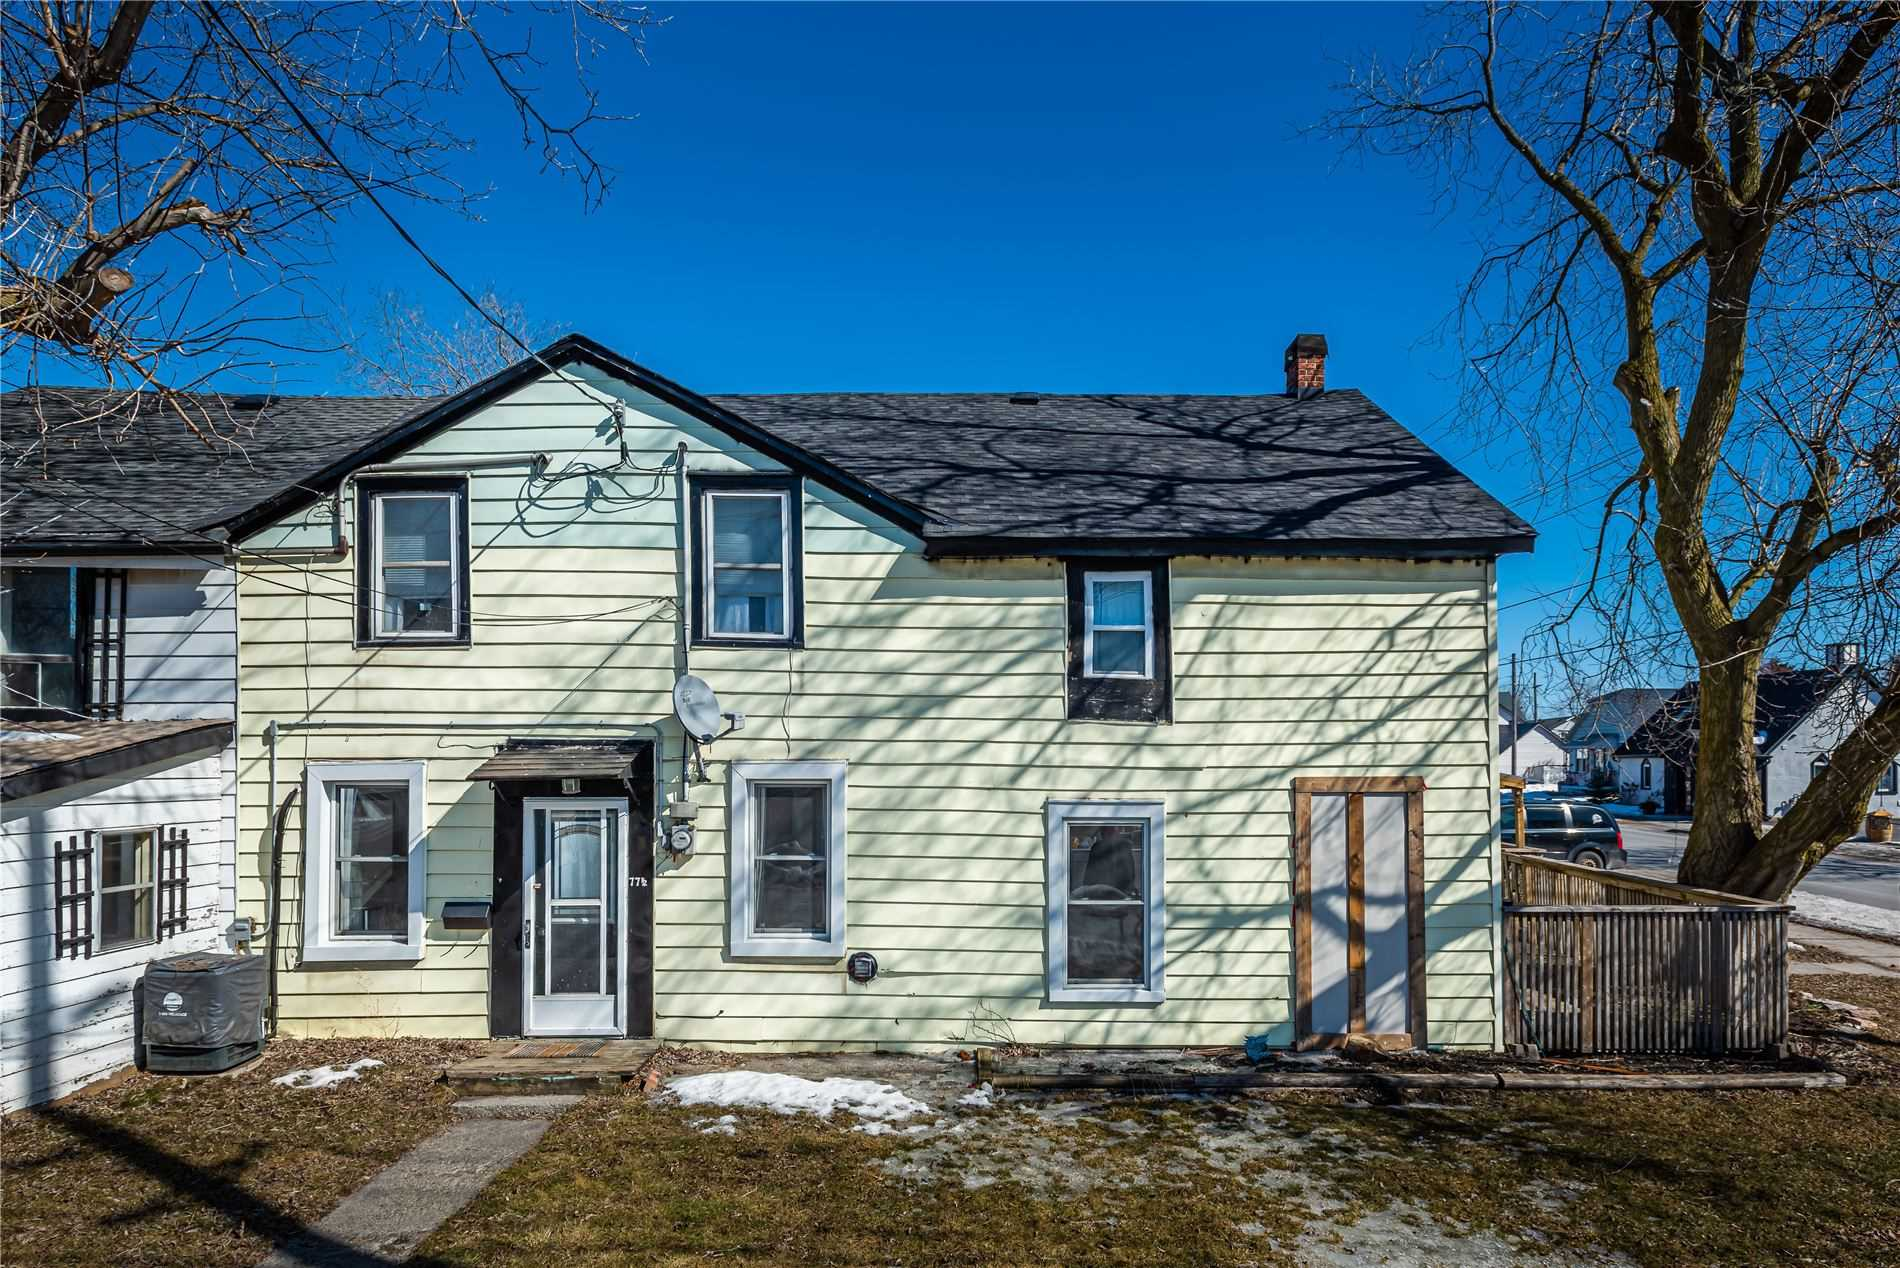 77 1/2 South Church St, Belleville, Ontario K8N 3B7, 4 Bedrooms Bedrooms, ,2 BathroomsBathrooms,Semi-detached,For Sale,South Church,X5137228